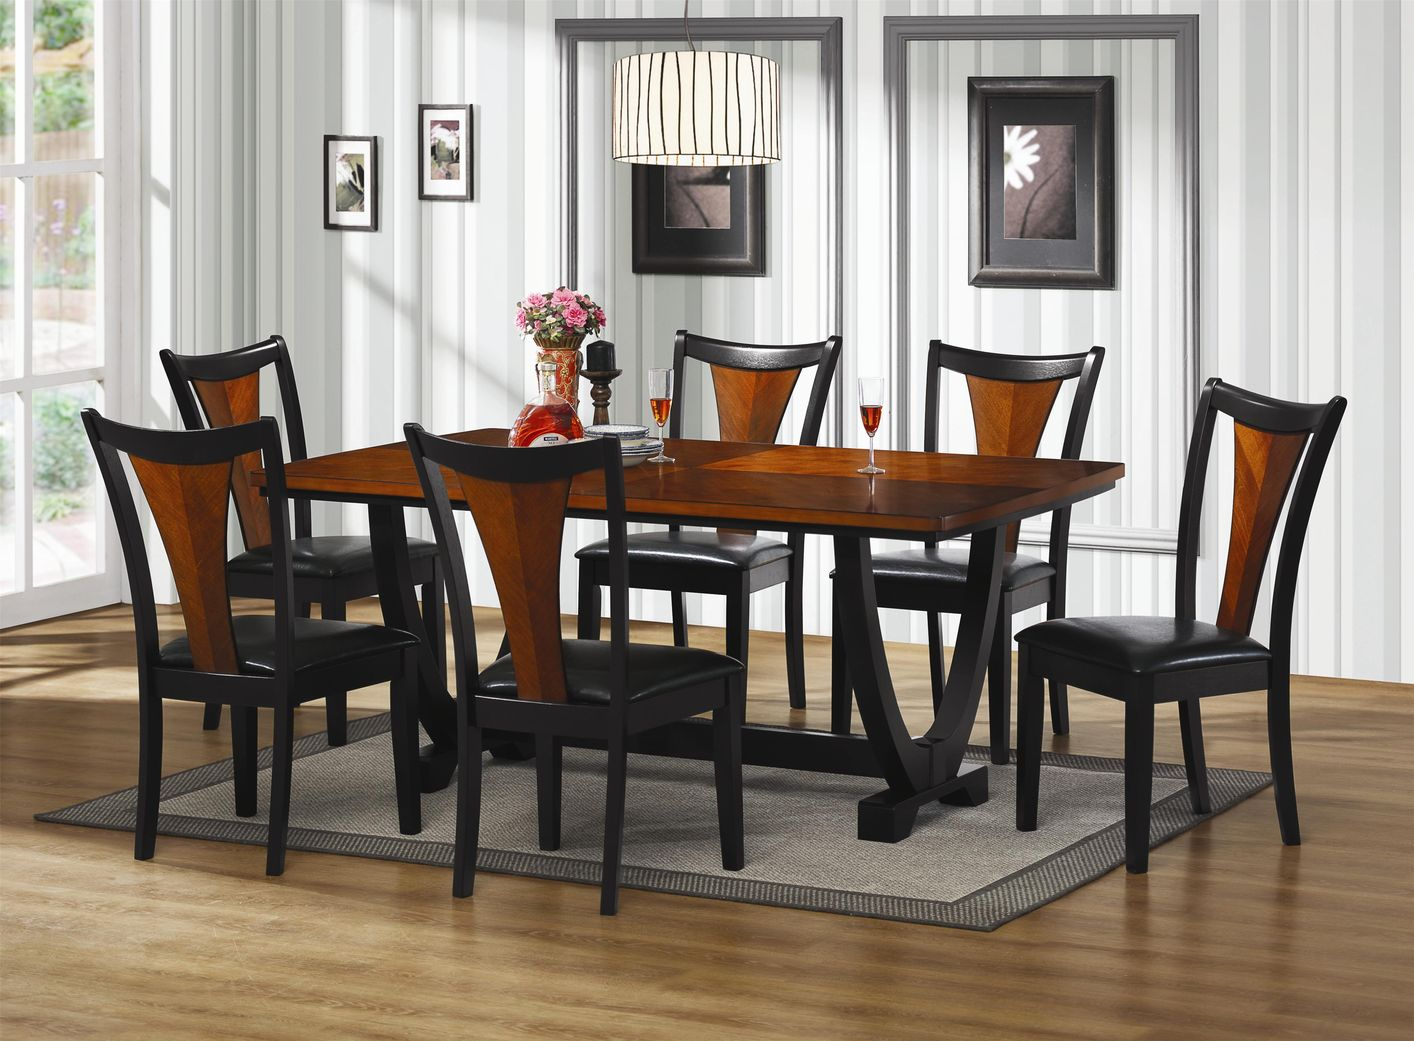 boyer black and cherry wood dining table set - steal-a-sofa